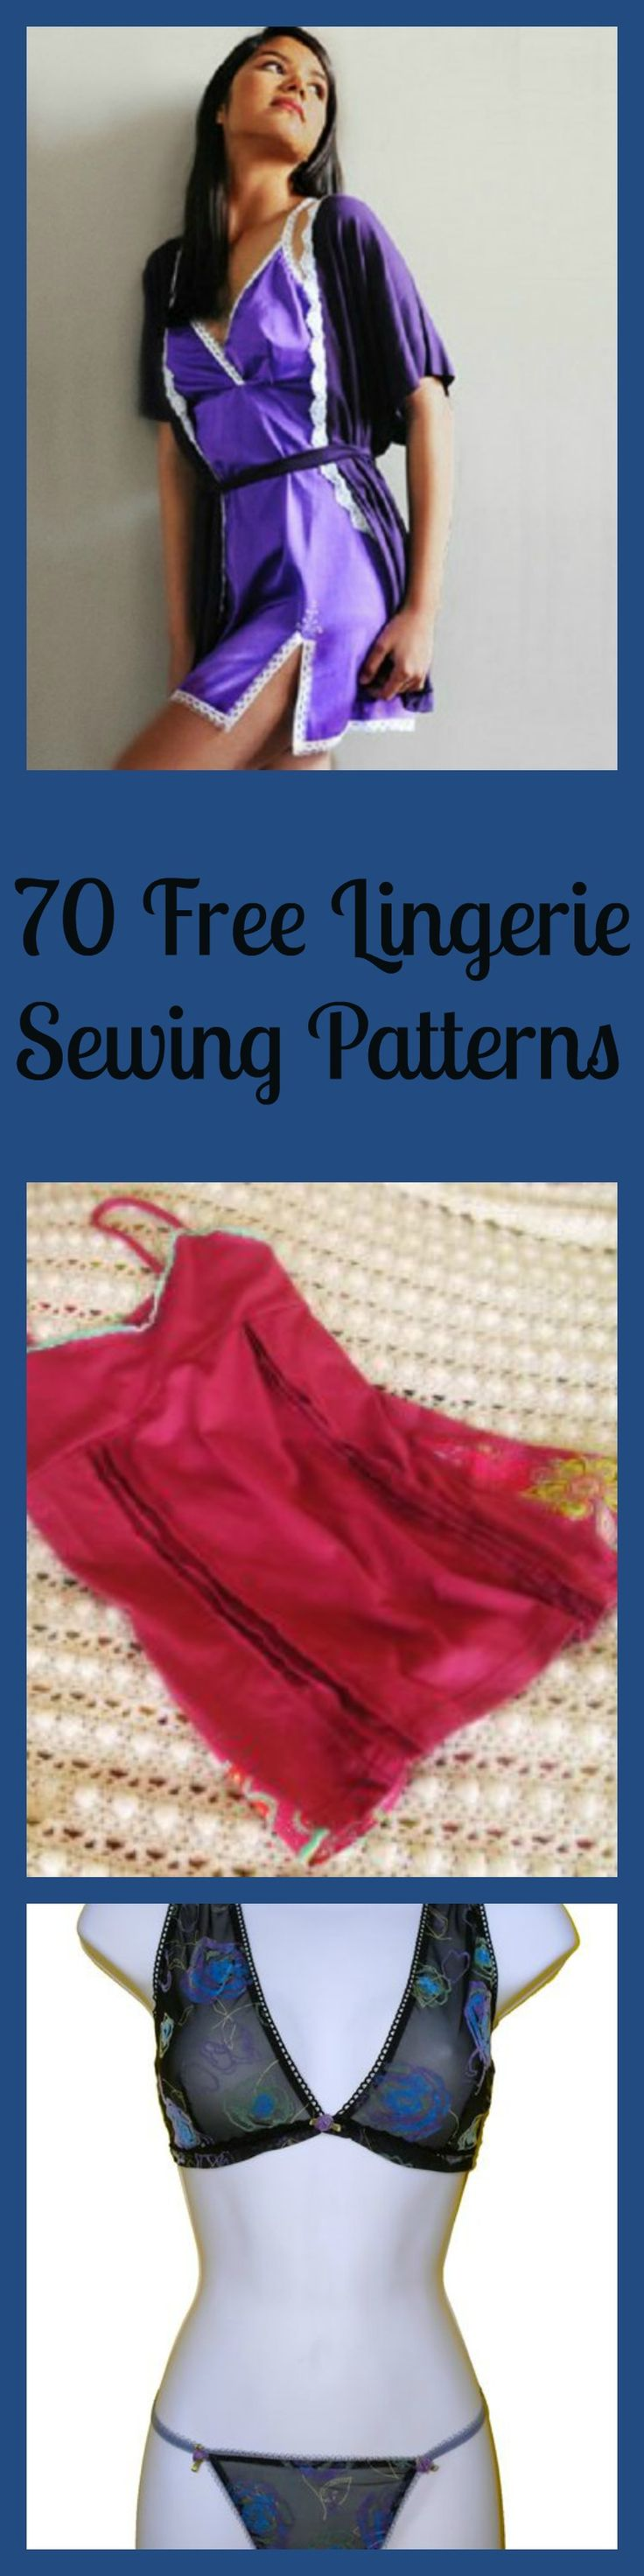 70 Free Lingerie Sewing Patterns